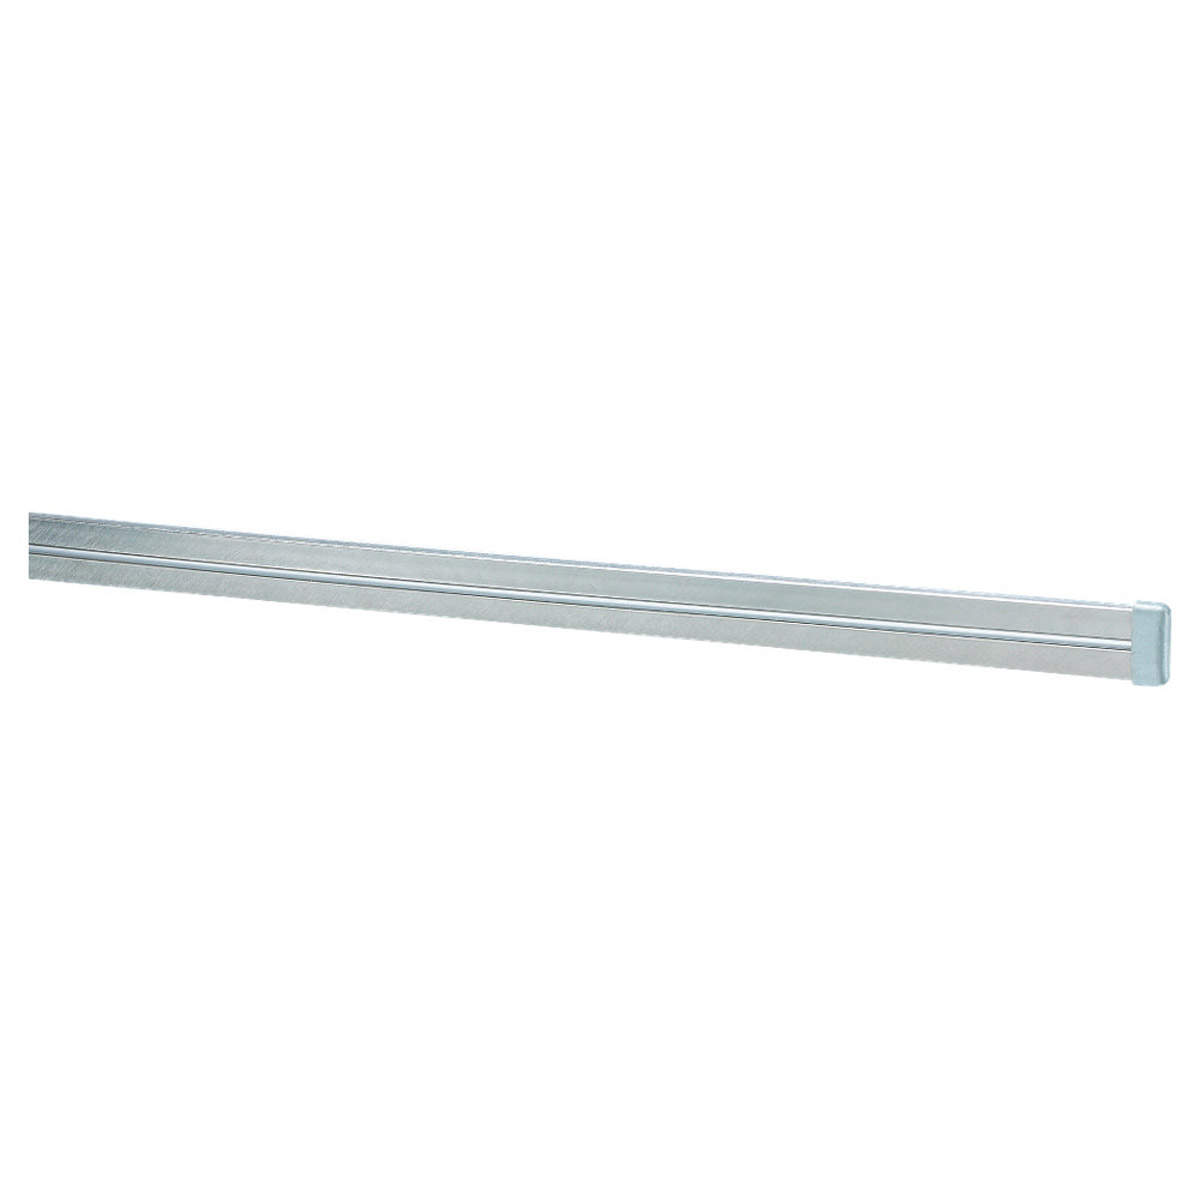 Sea Gull Lighting RTx Eight Foot Rail in Brushed Stainless 95301-98